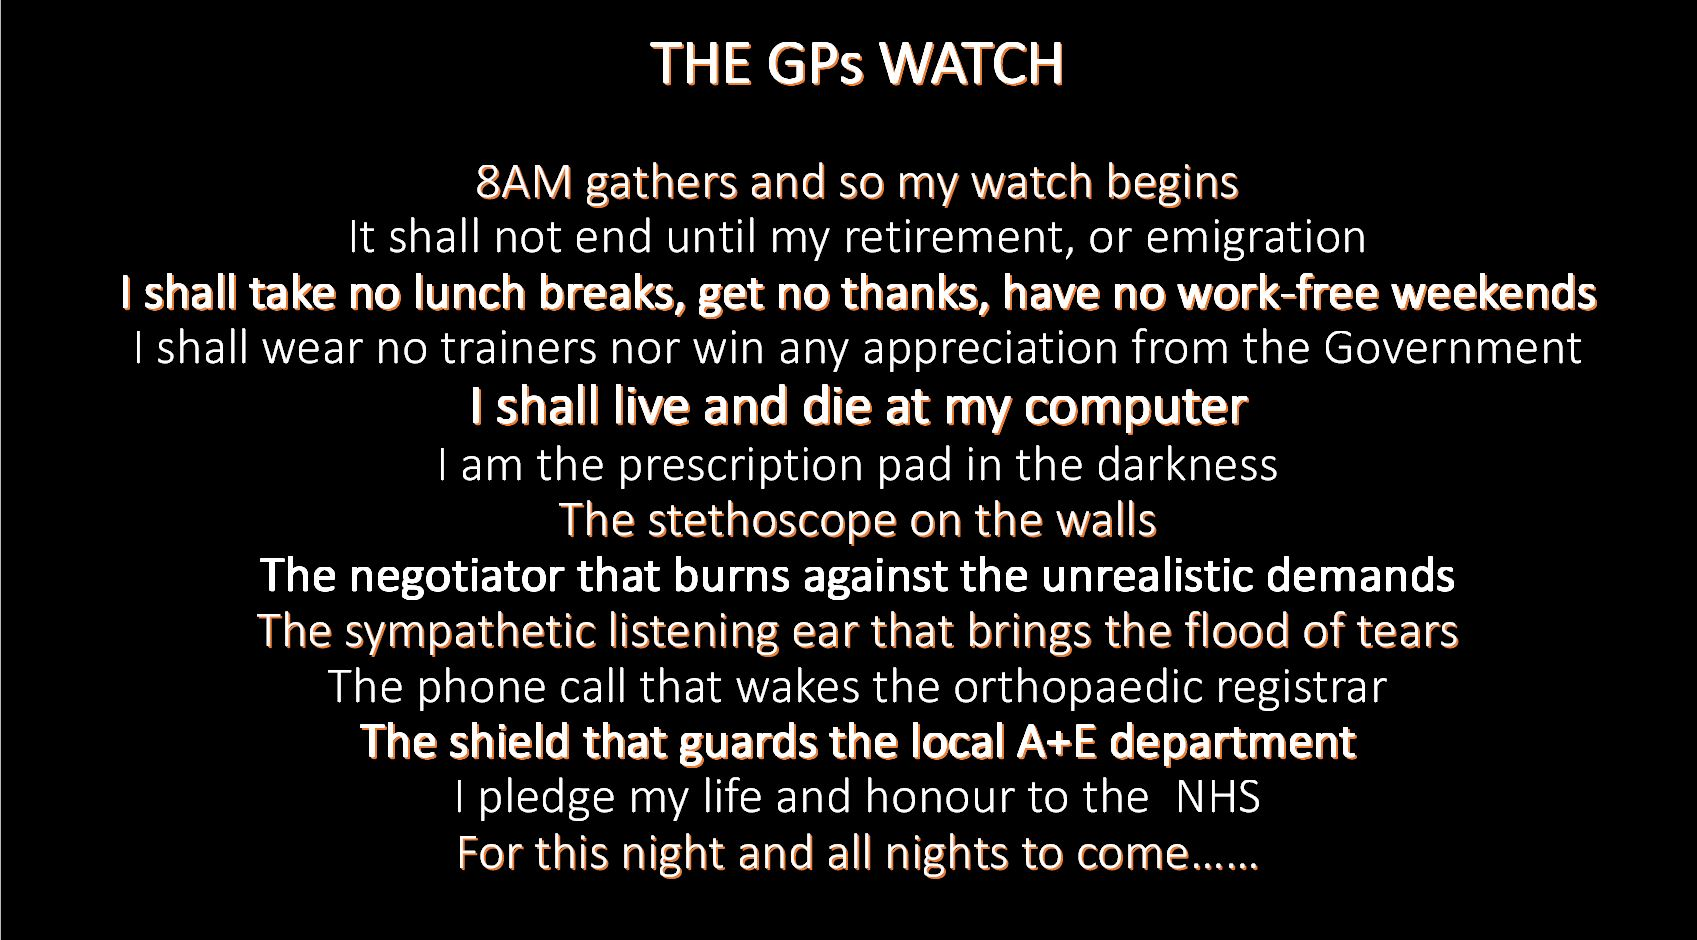 Do you dare swear the oath of the GPs Watch?